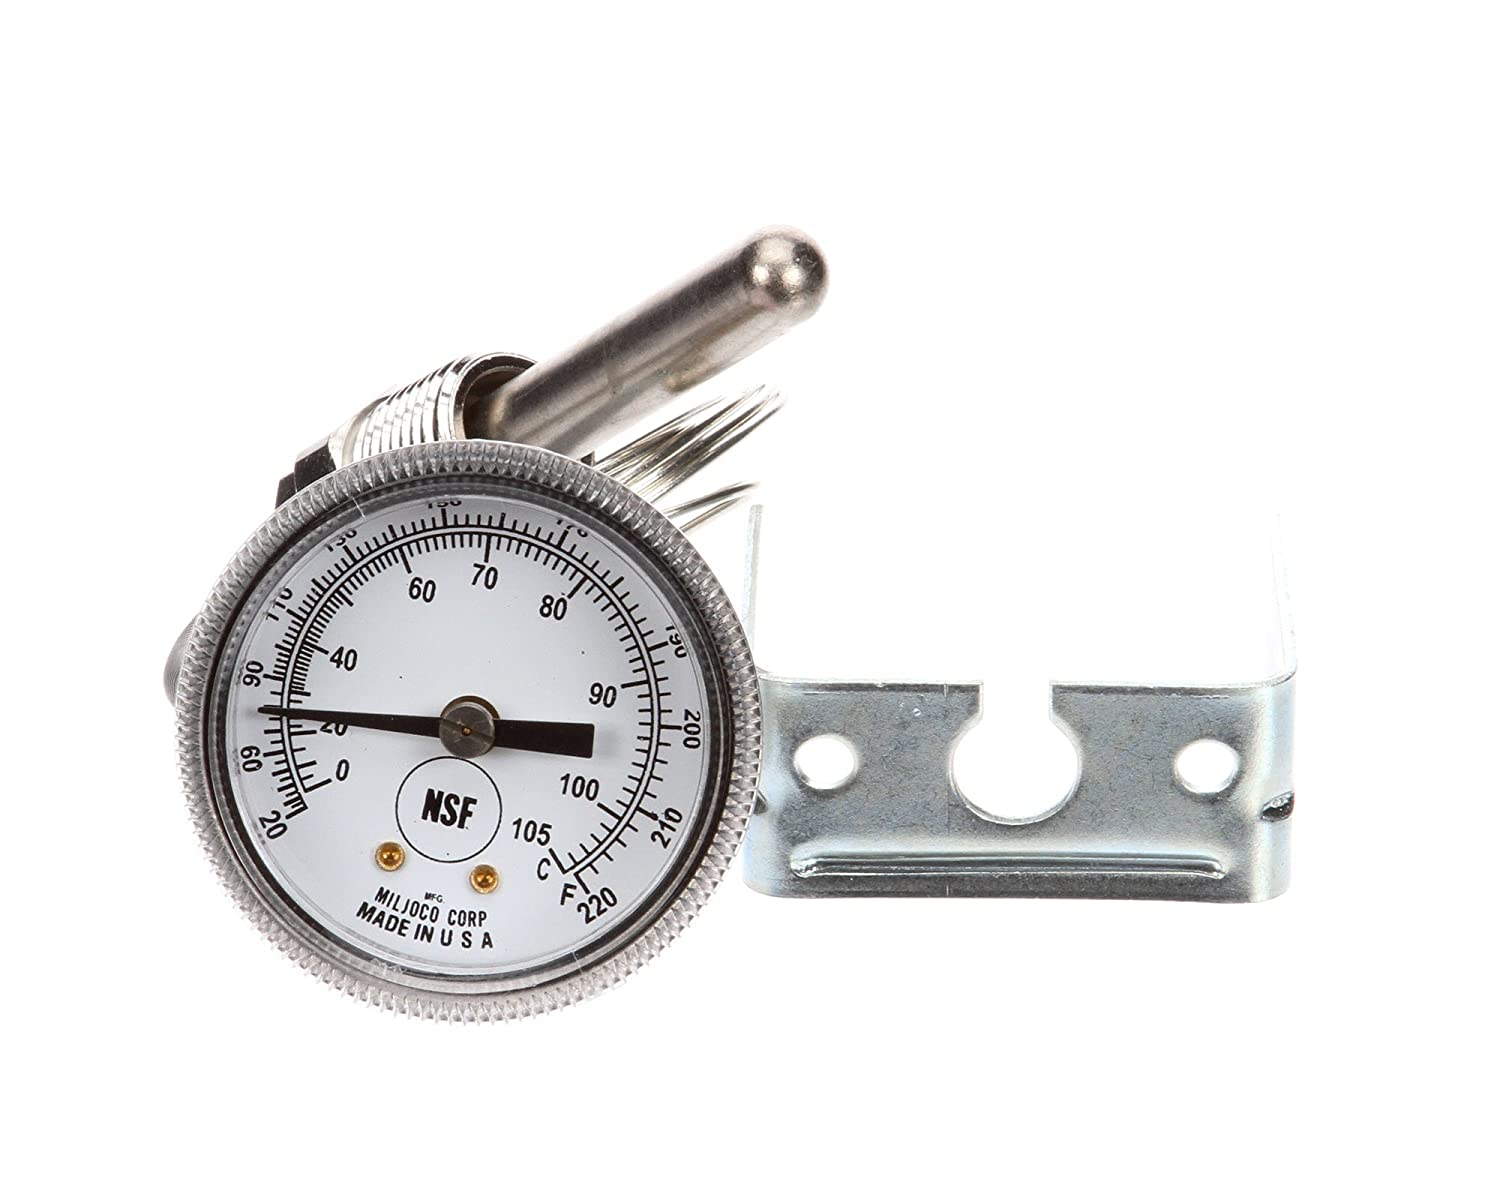 Image of Food Service Equipment & Supplies American Dish Service 299-1004 Temperature Gauge